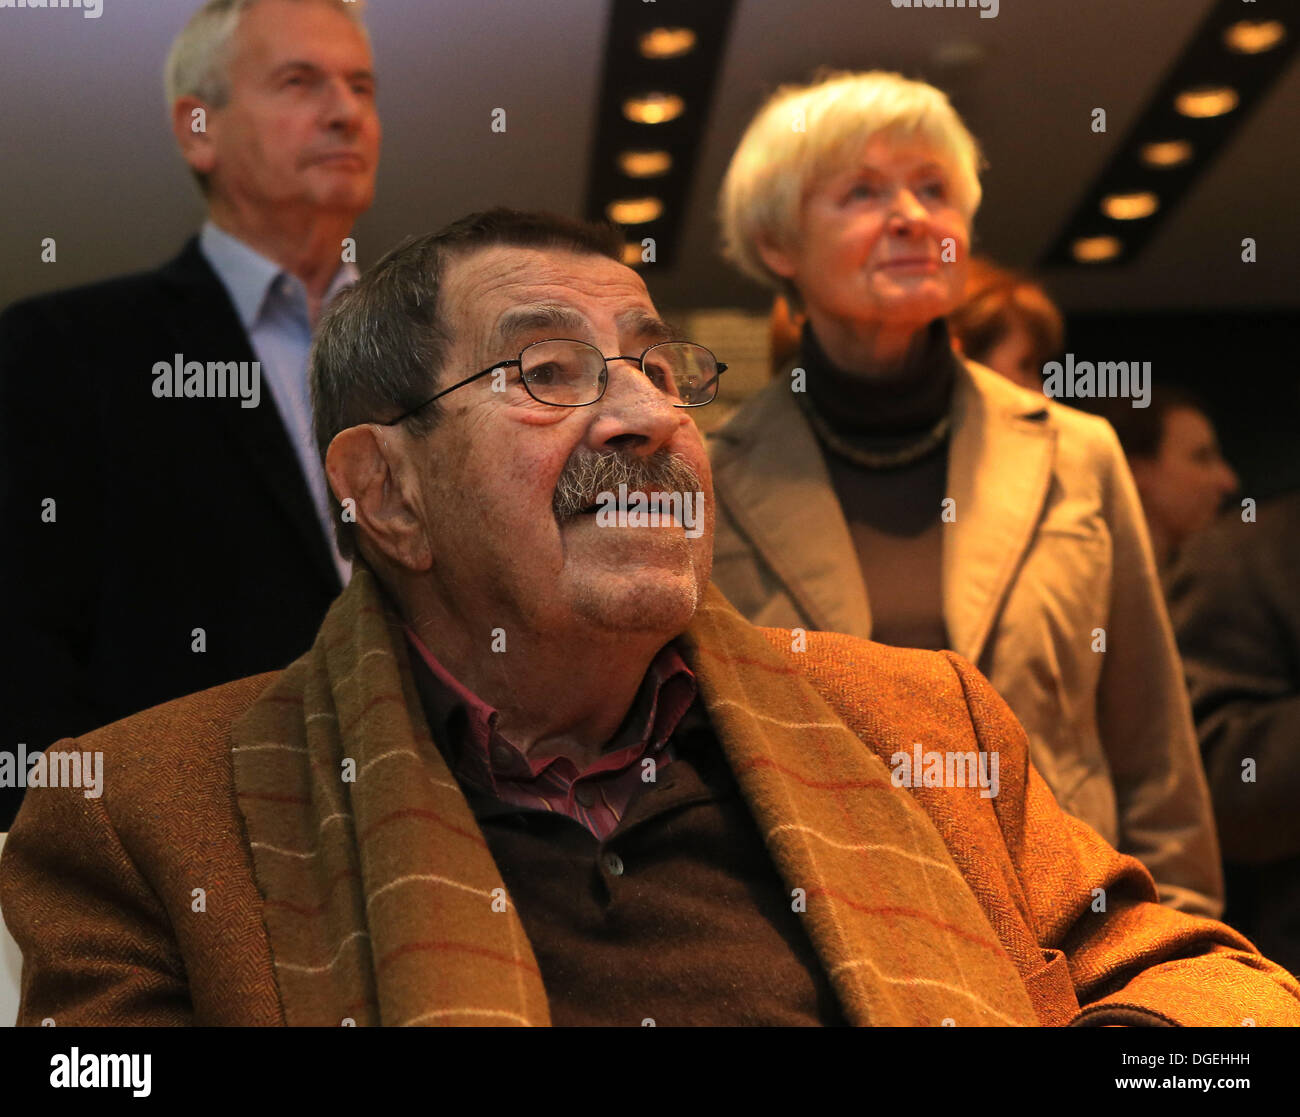 Luebeck, Germany. 18th Oct, 2013. German writer and recipient of the Nobel Prize in literature Guenter Grass attends his belated birthday party at the Guenter-Grass-Haus in Luebeck, Germany, 18 October 2013. Grass turned 86 on 16 October. Photo: Markus Scholz/dpa/Alamy Live News - Stock Image